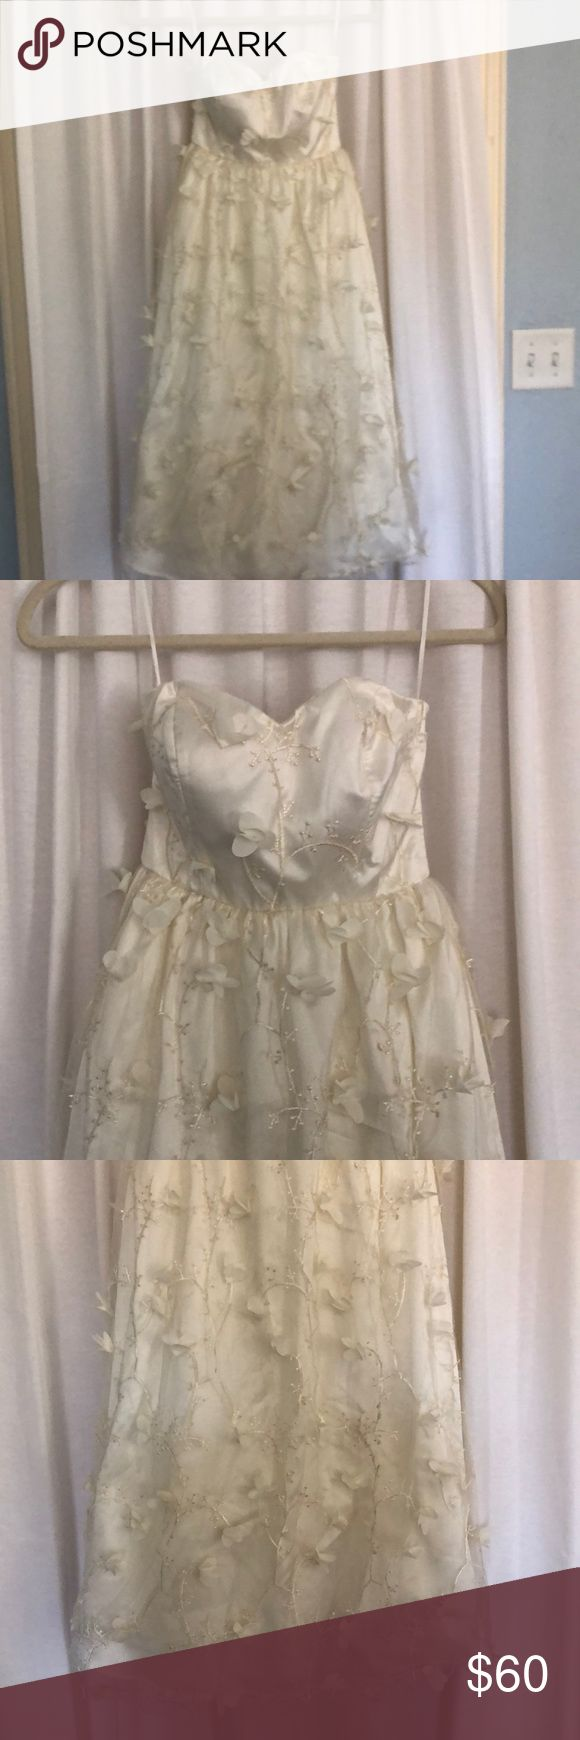 ModCloth Merry Moxie Midi Dress NWT A beautiful ivory dress with intricate vine and floral design- 3D petals coming off dress. Size XXS. Never been worn! Modcloth Dresses Wedding